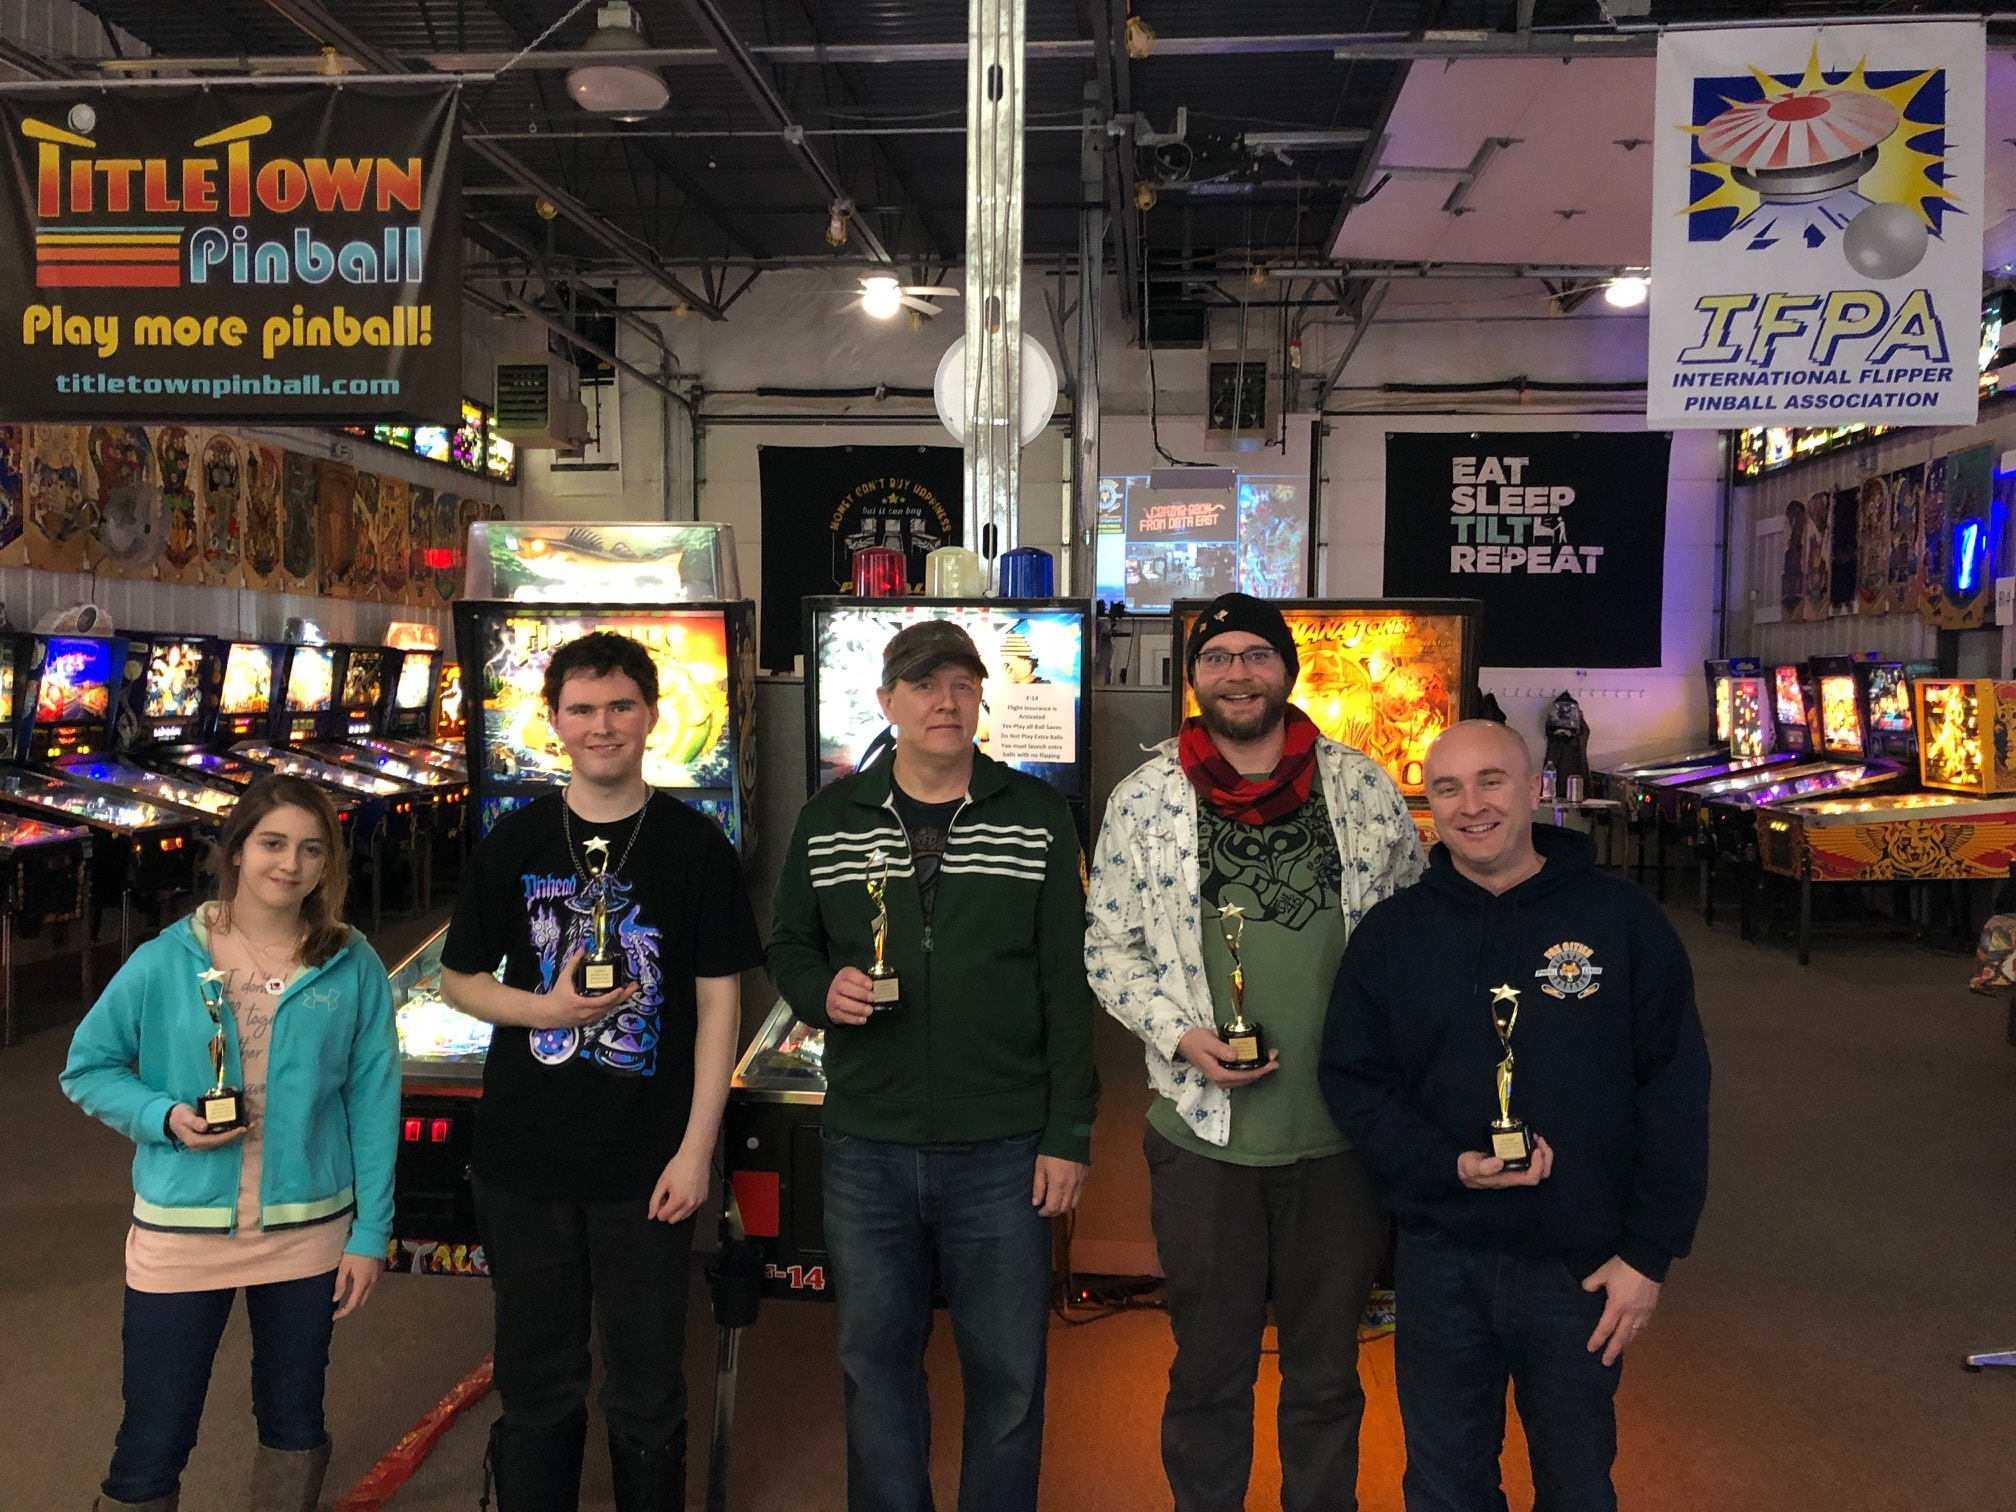 New Years Launch Party Pinball Tournament Winners Green Bay, WI